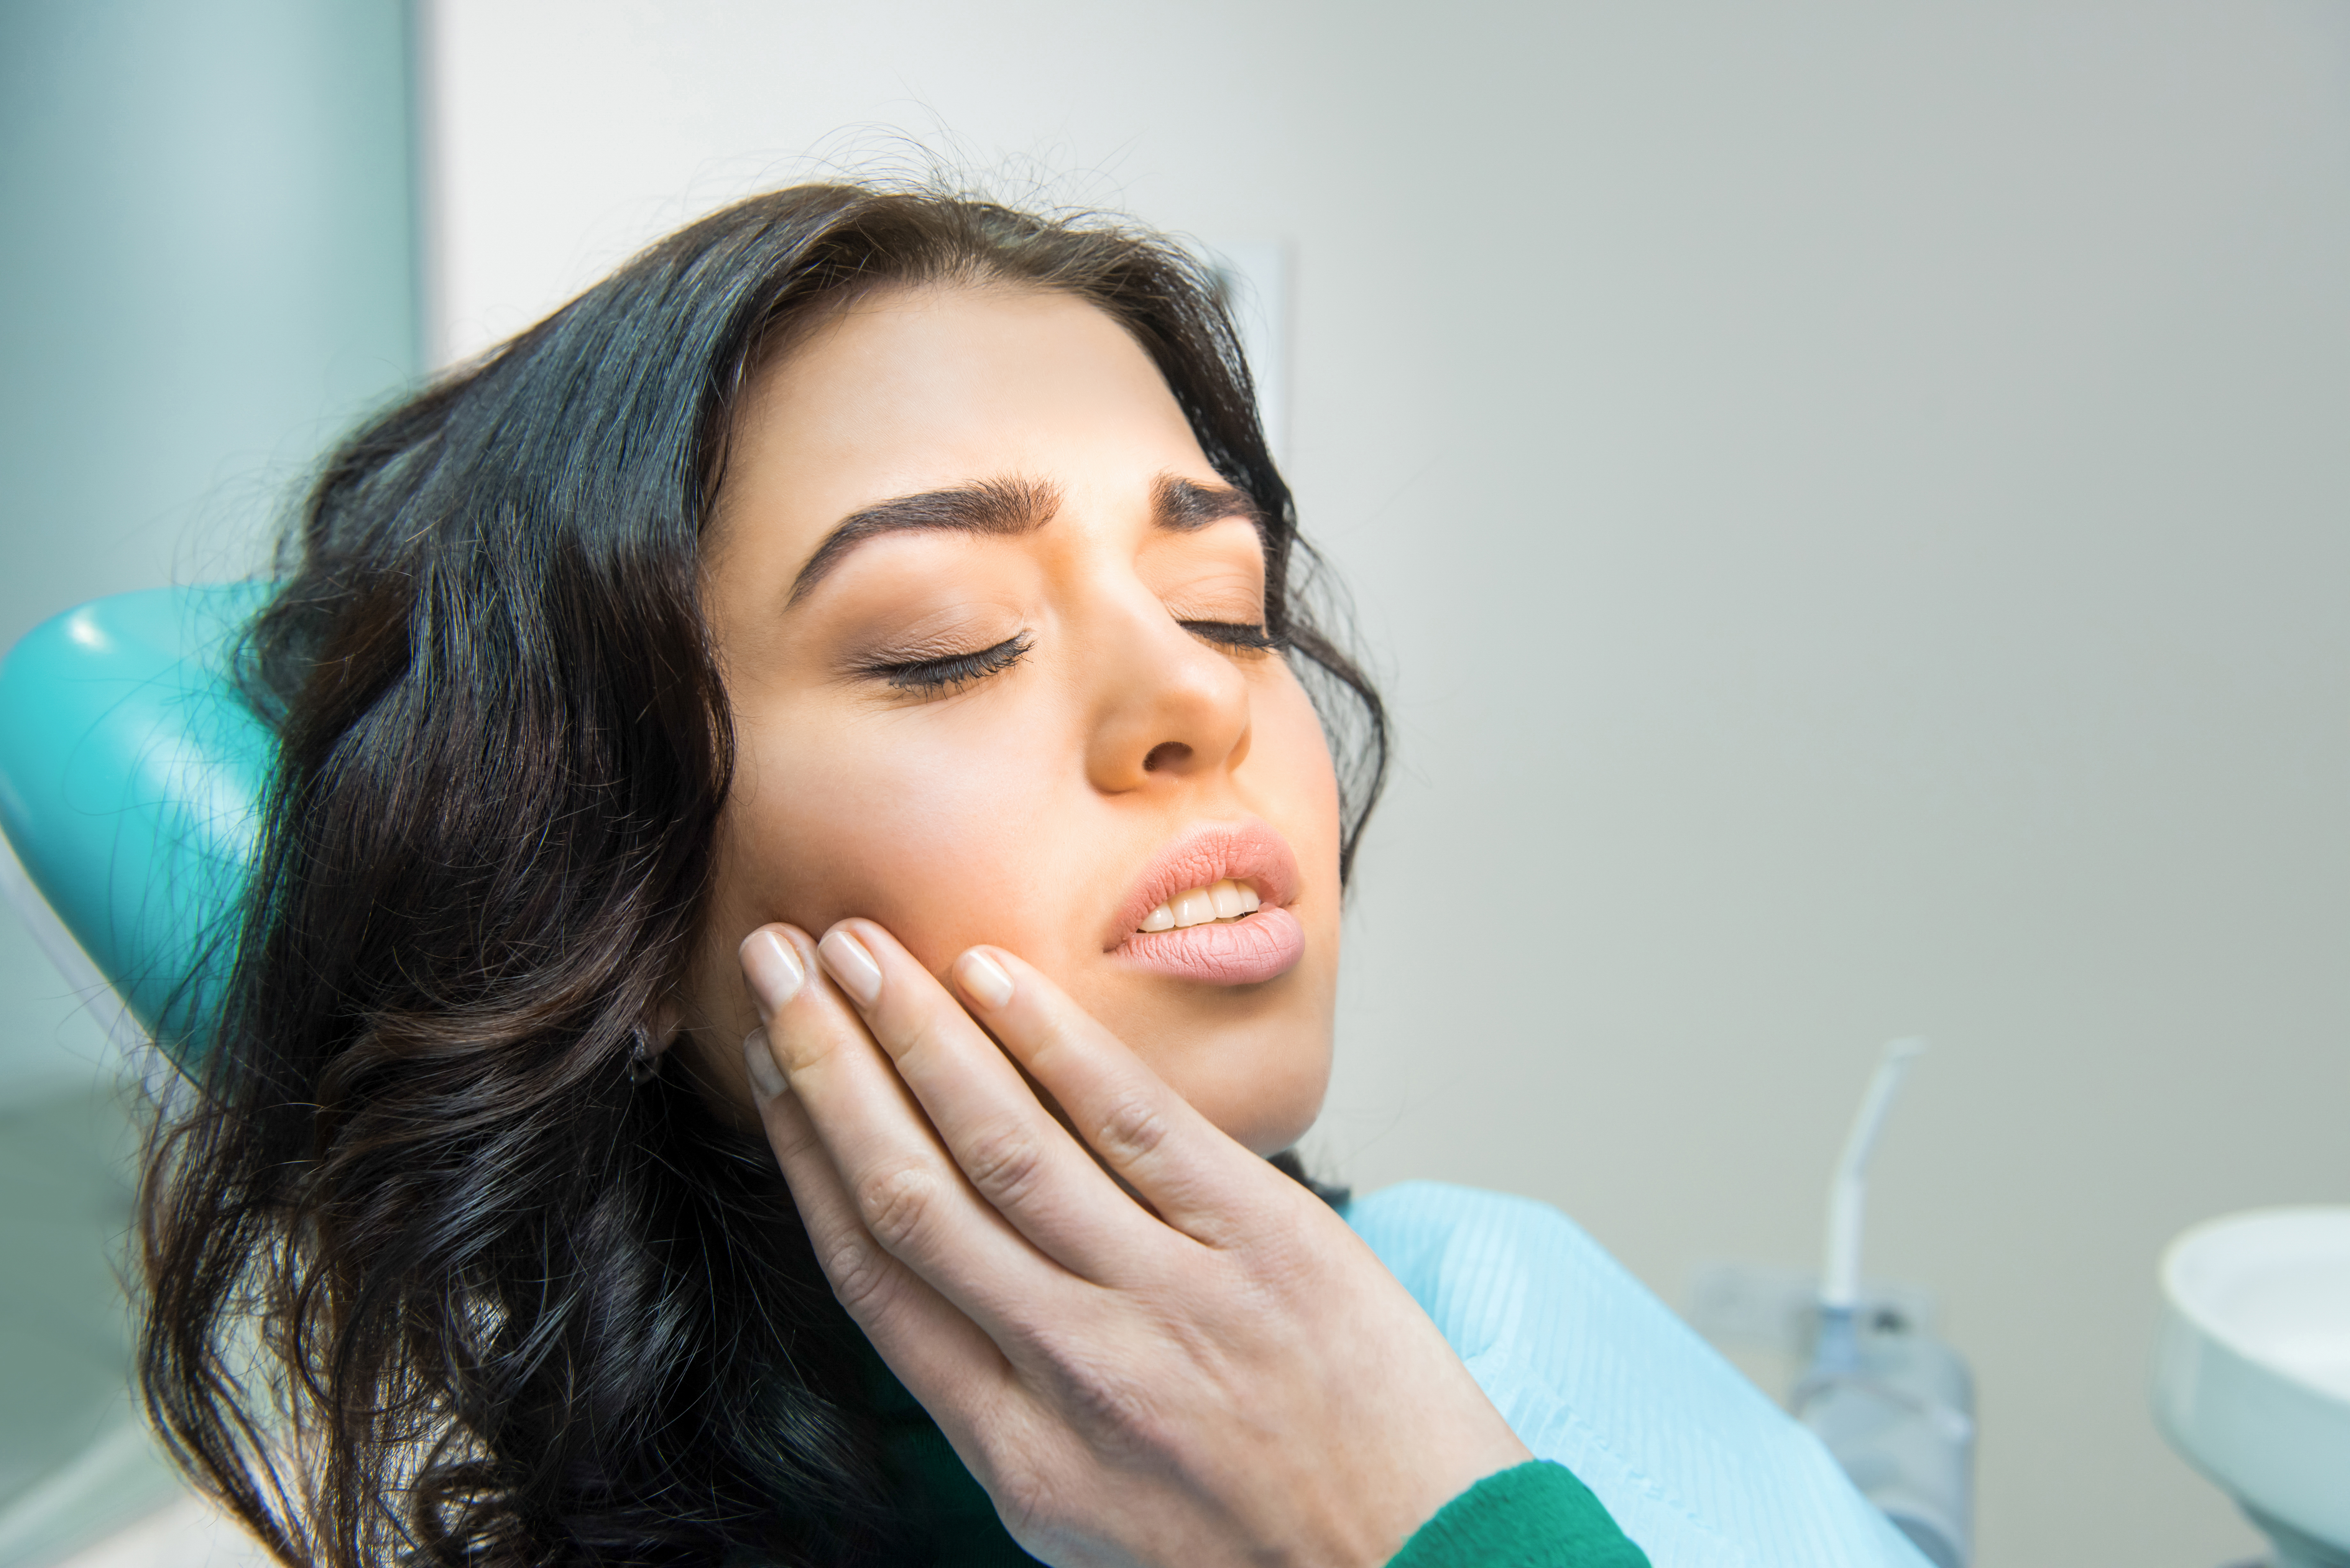 girl-with-gum-pain